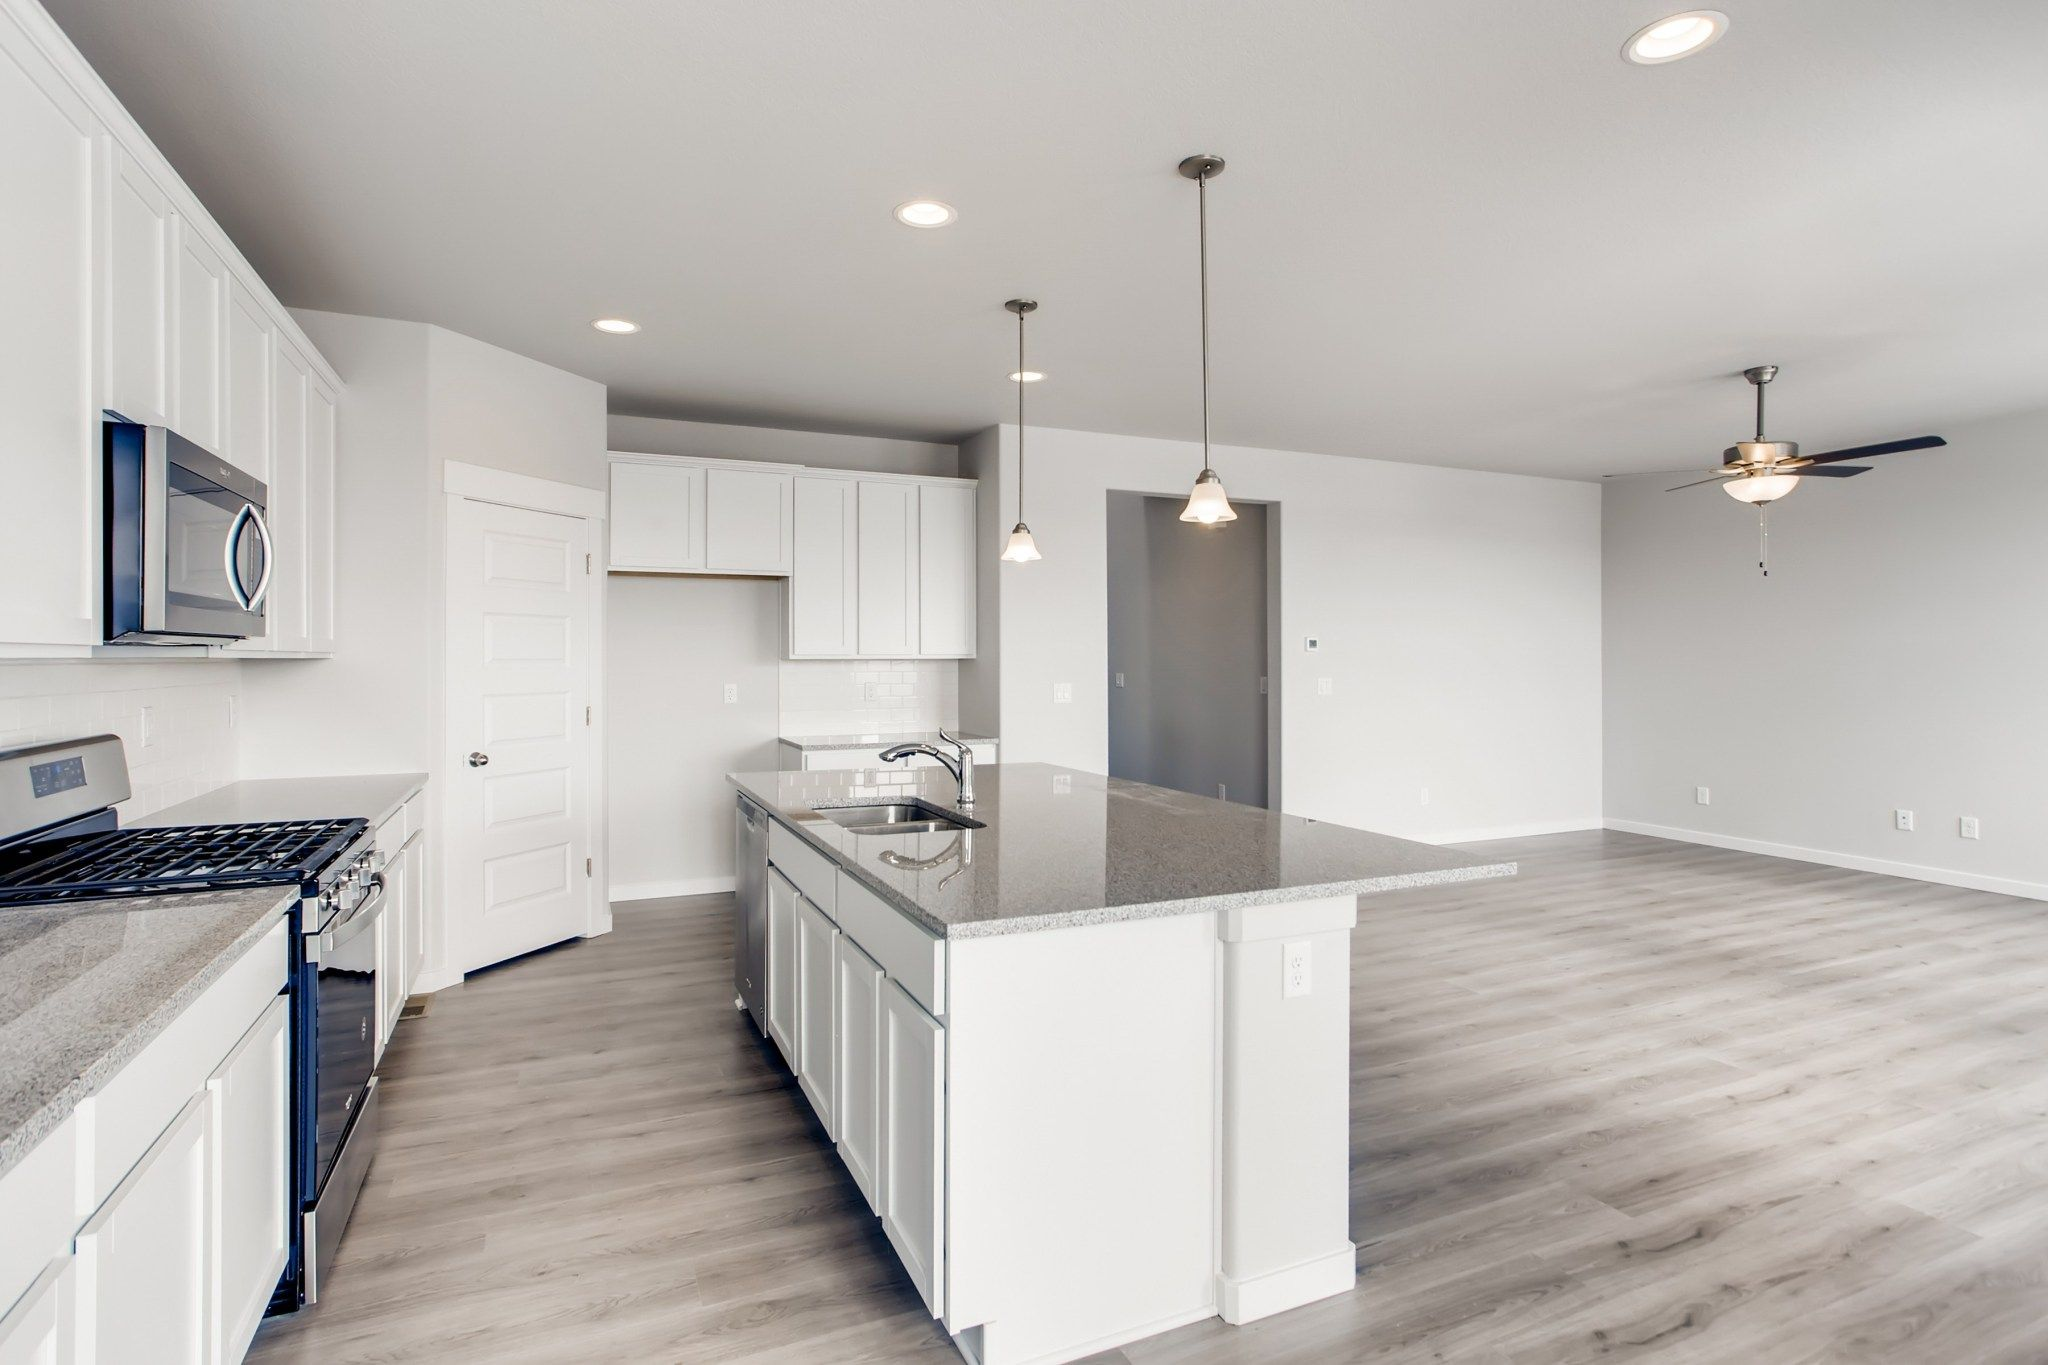 Kitchen featured in the Plan V419 By American Legend Homes in Fort Collins-Loveland, CO